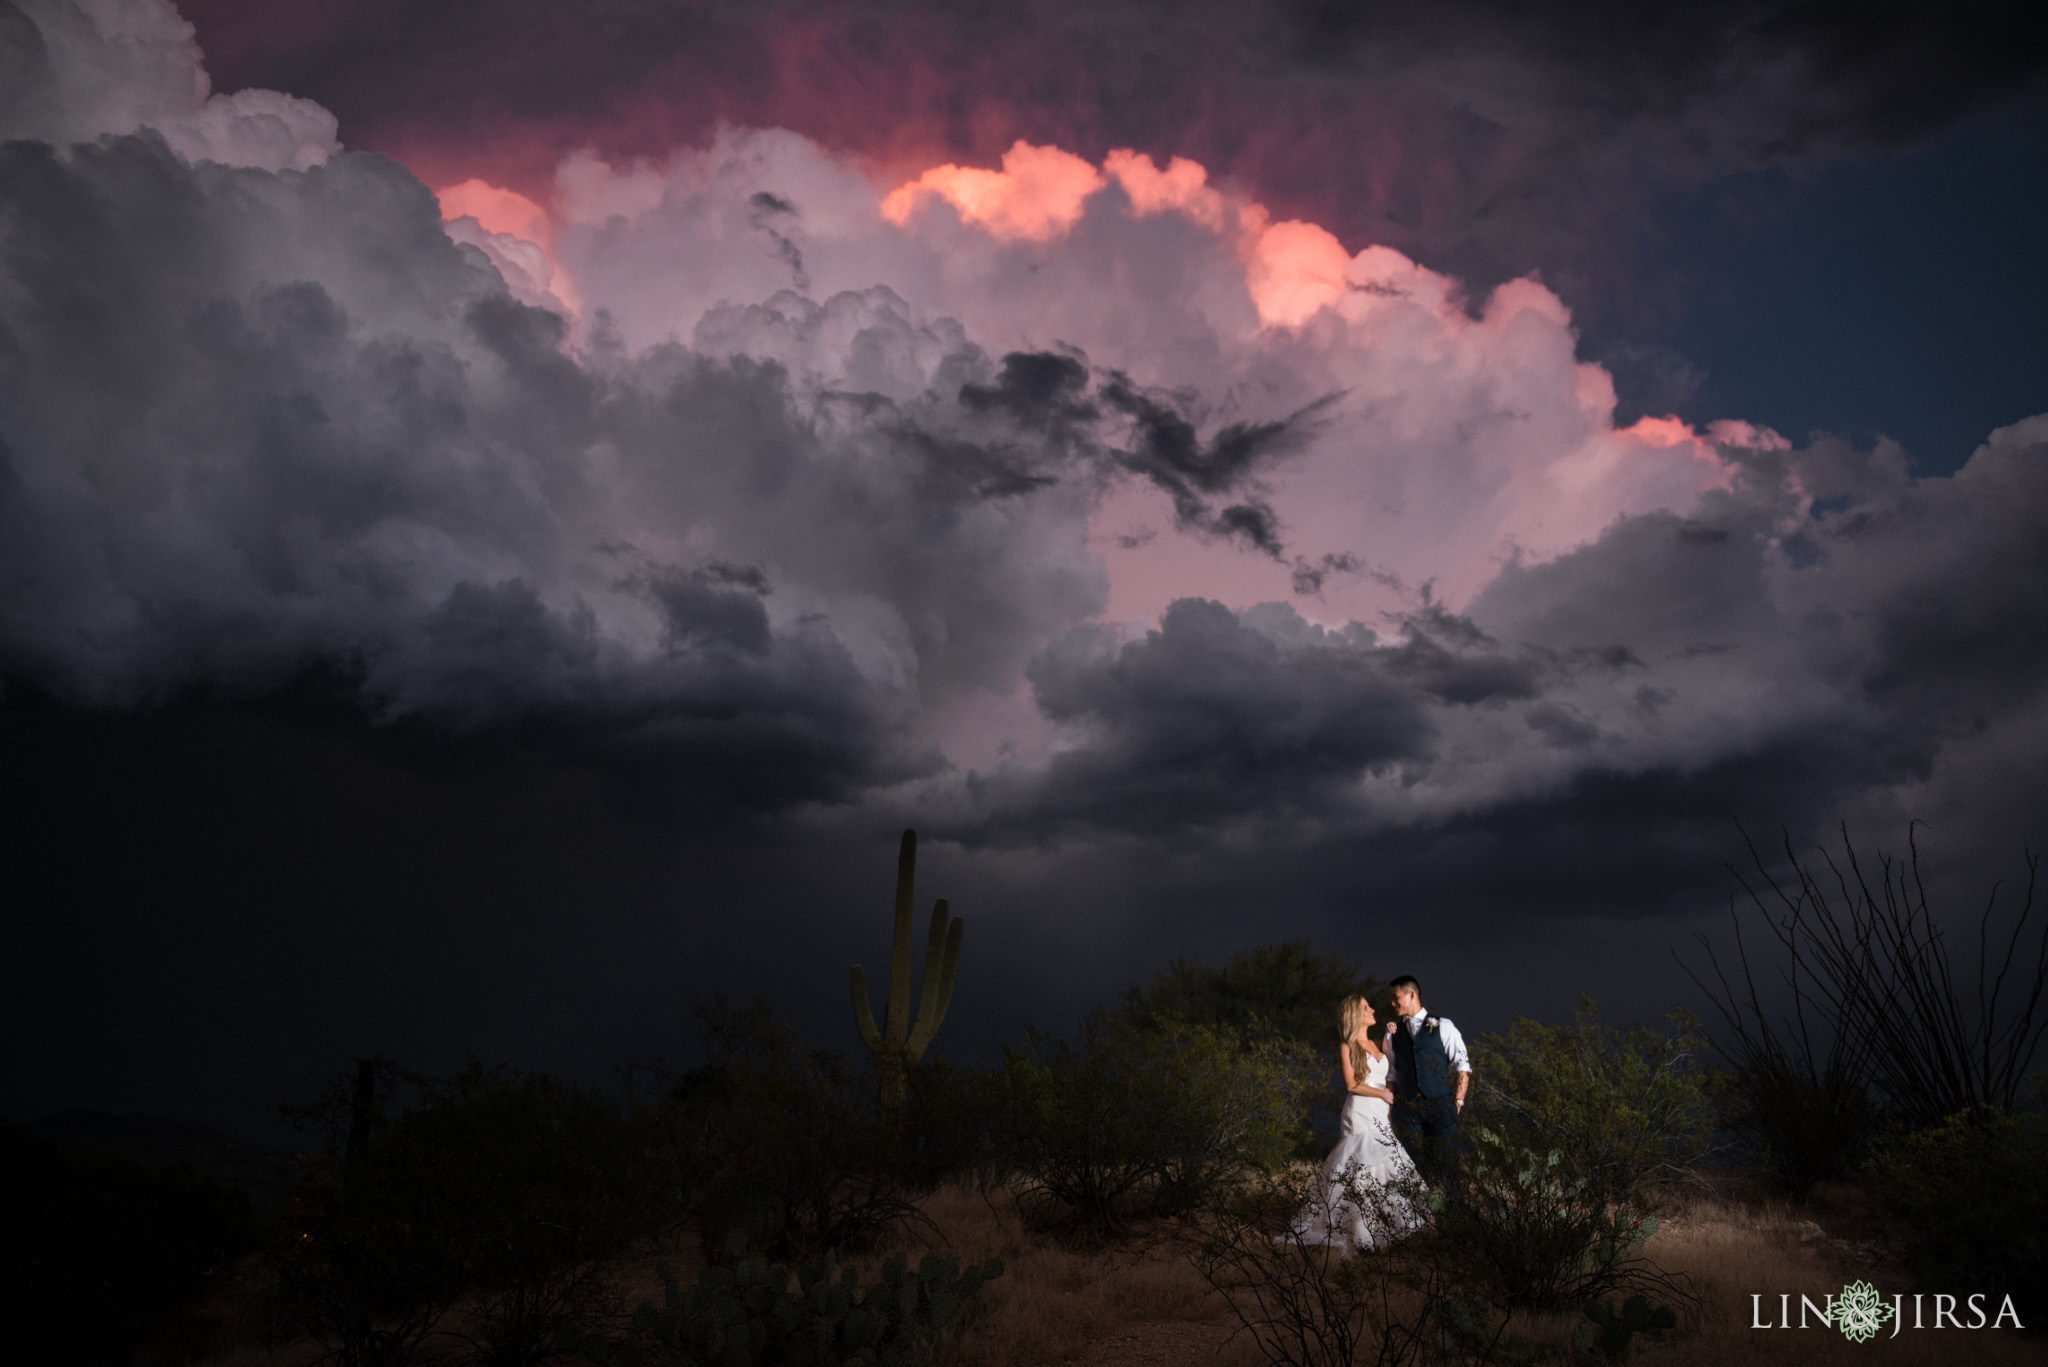 Wedding Photography Arizona: Saguaro Buttes Arizona Wedding